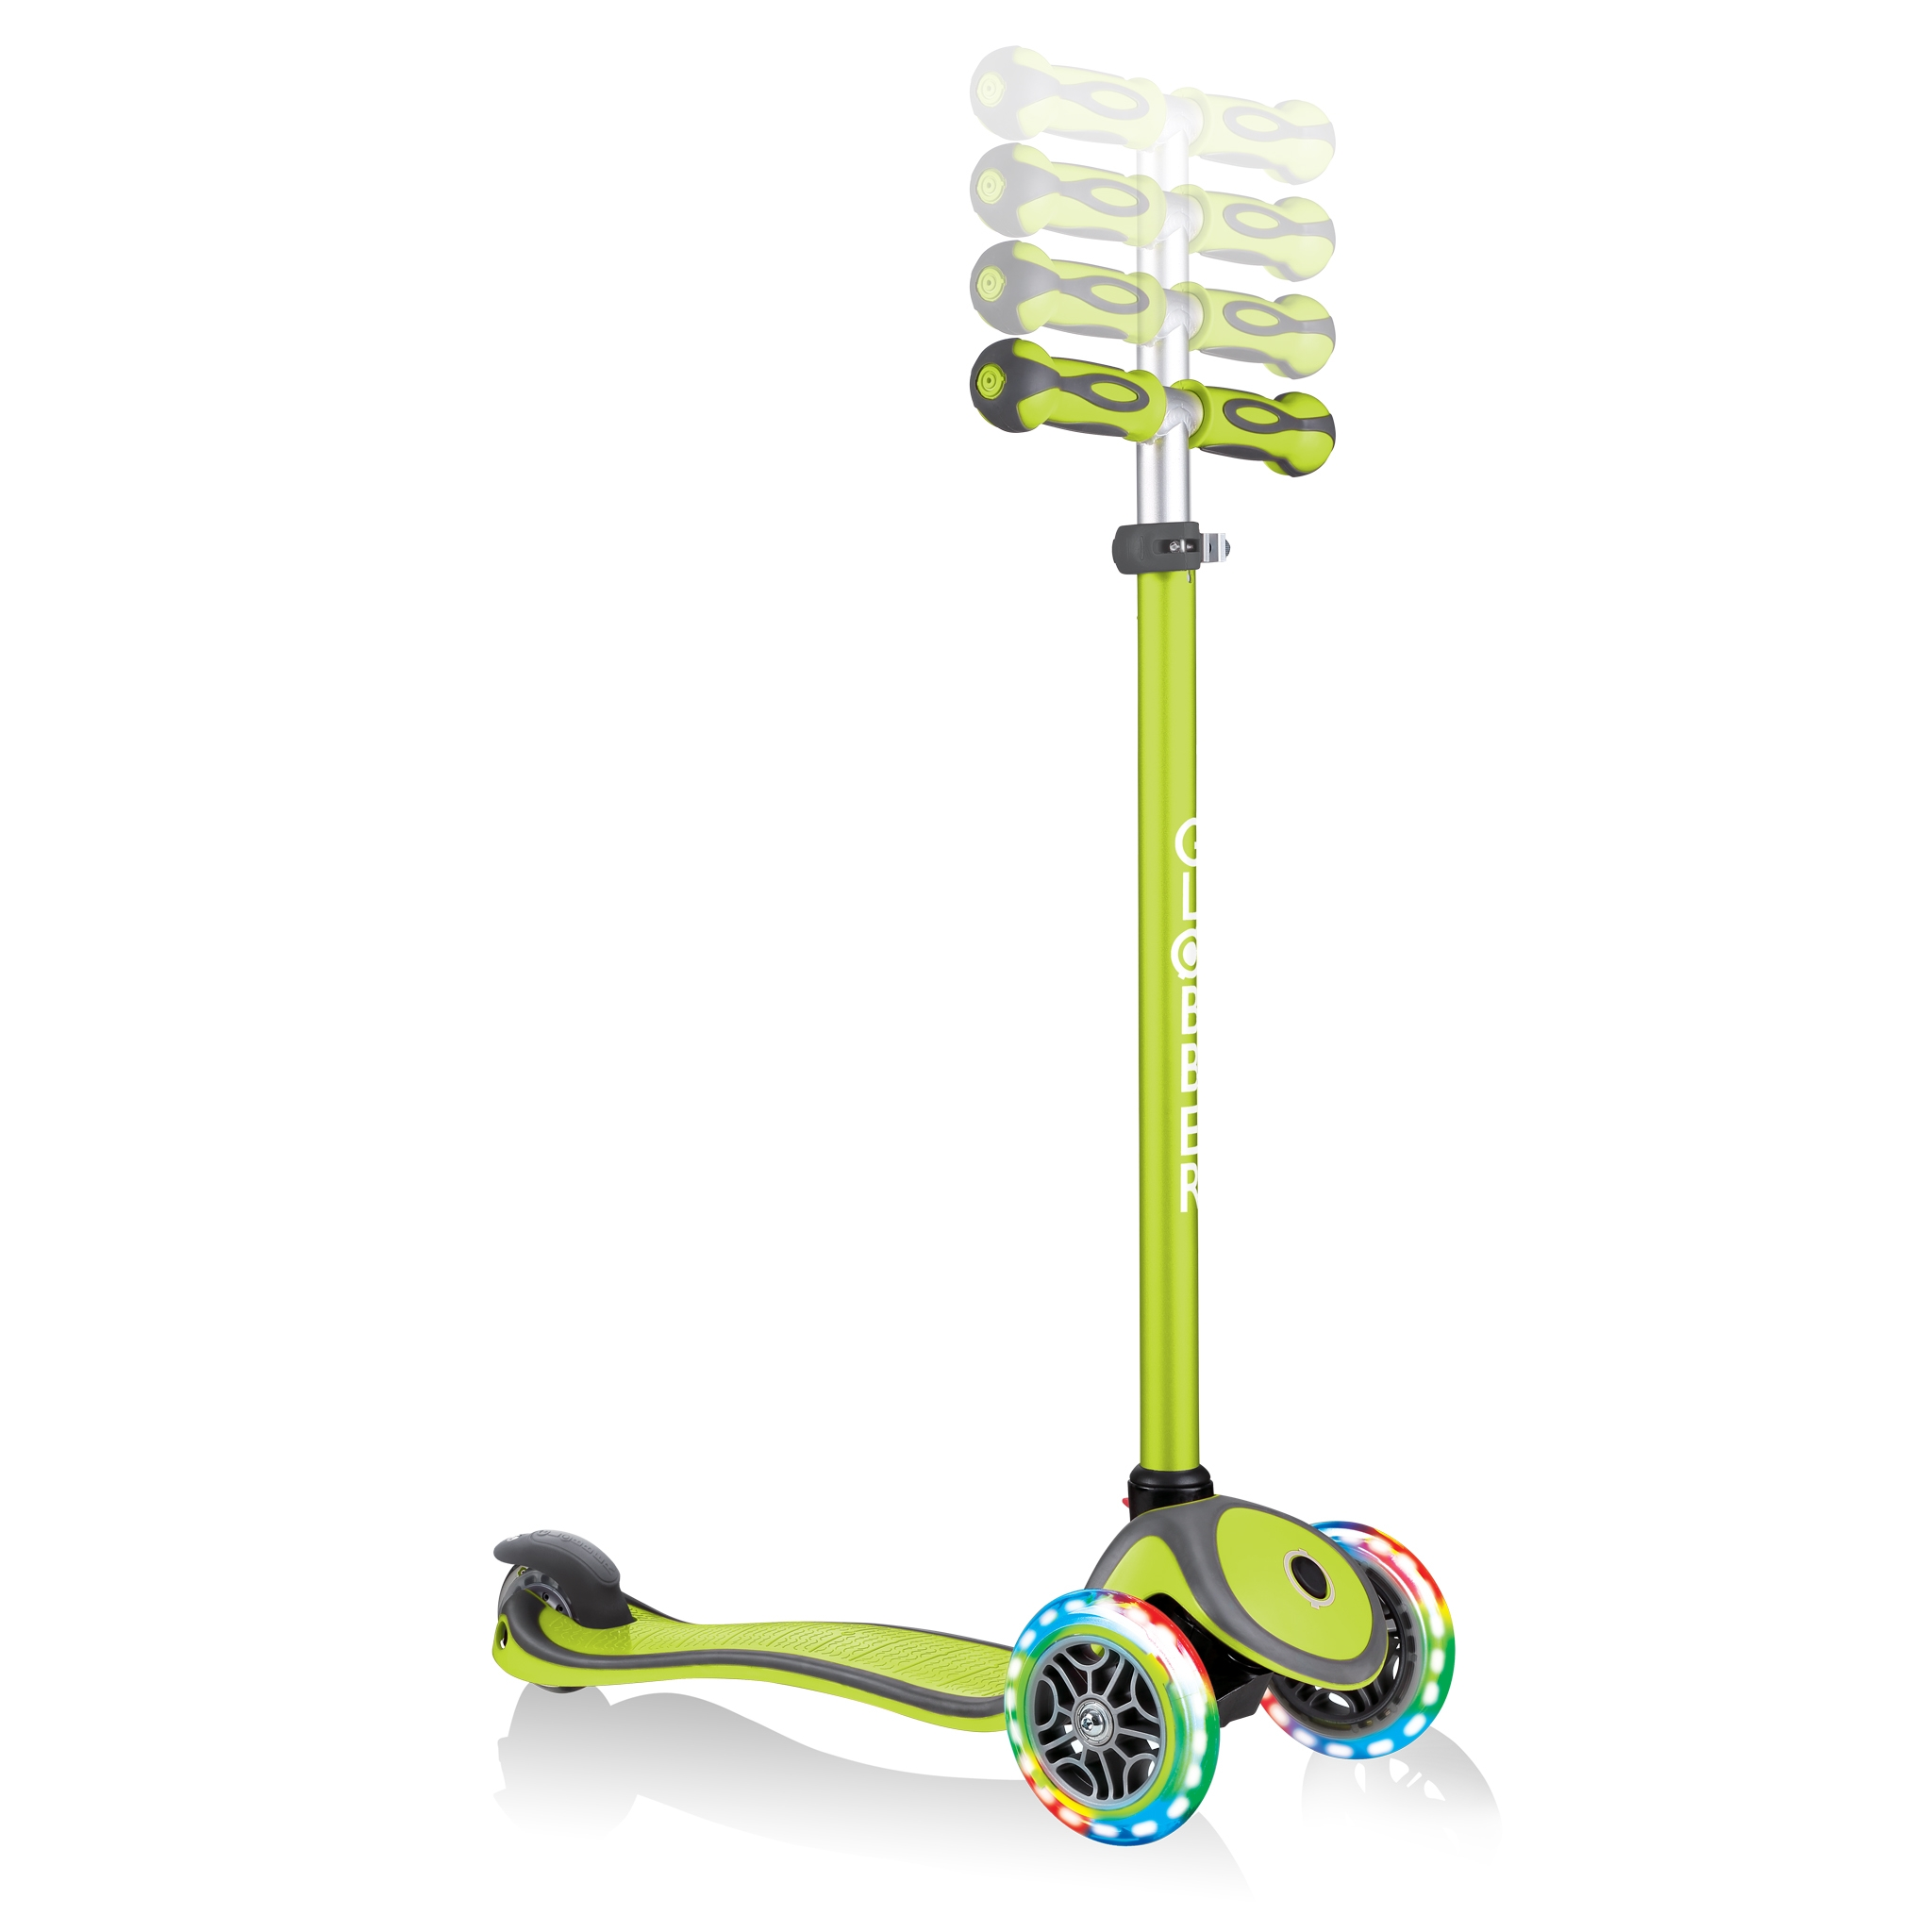 GO-UP-COMFORT-LIGHTS-scooter-with-seat-4-height-adjustable-T-bar-lime-green 5